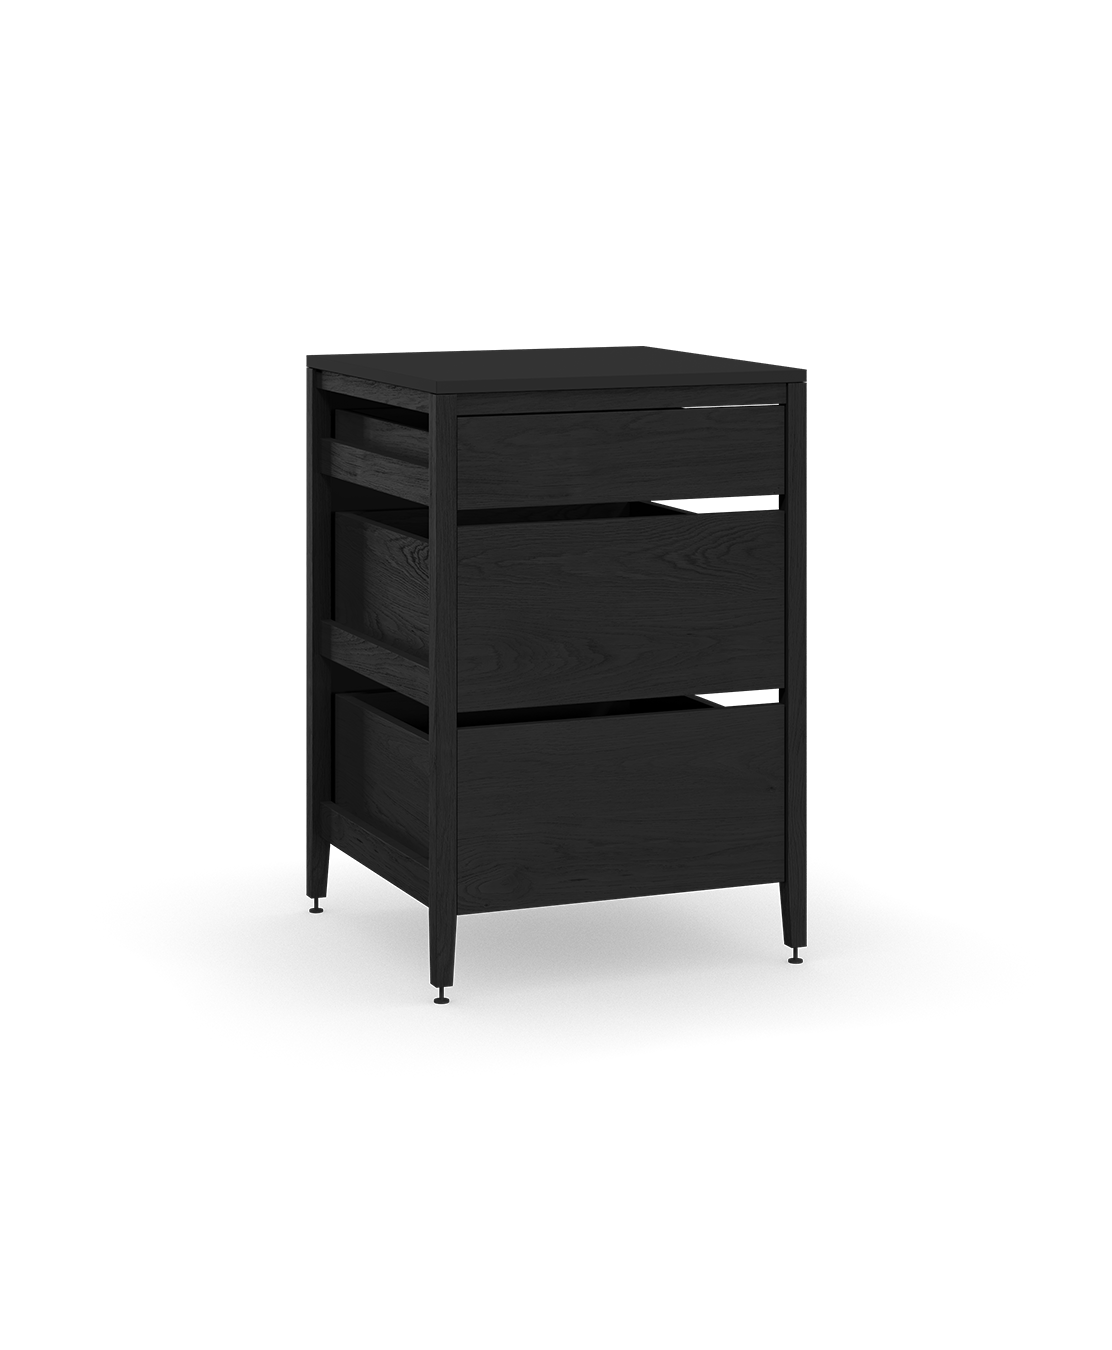 base kitchen cabinets sink light radix cabinet 3 drawers 27 in black stain oak blk coquo midnight stained solid wood modular inch